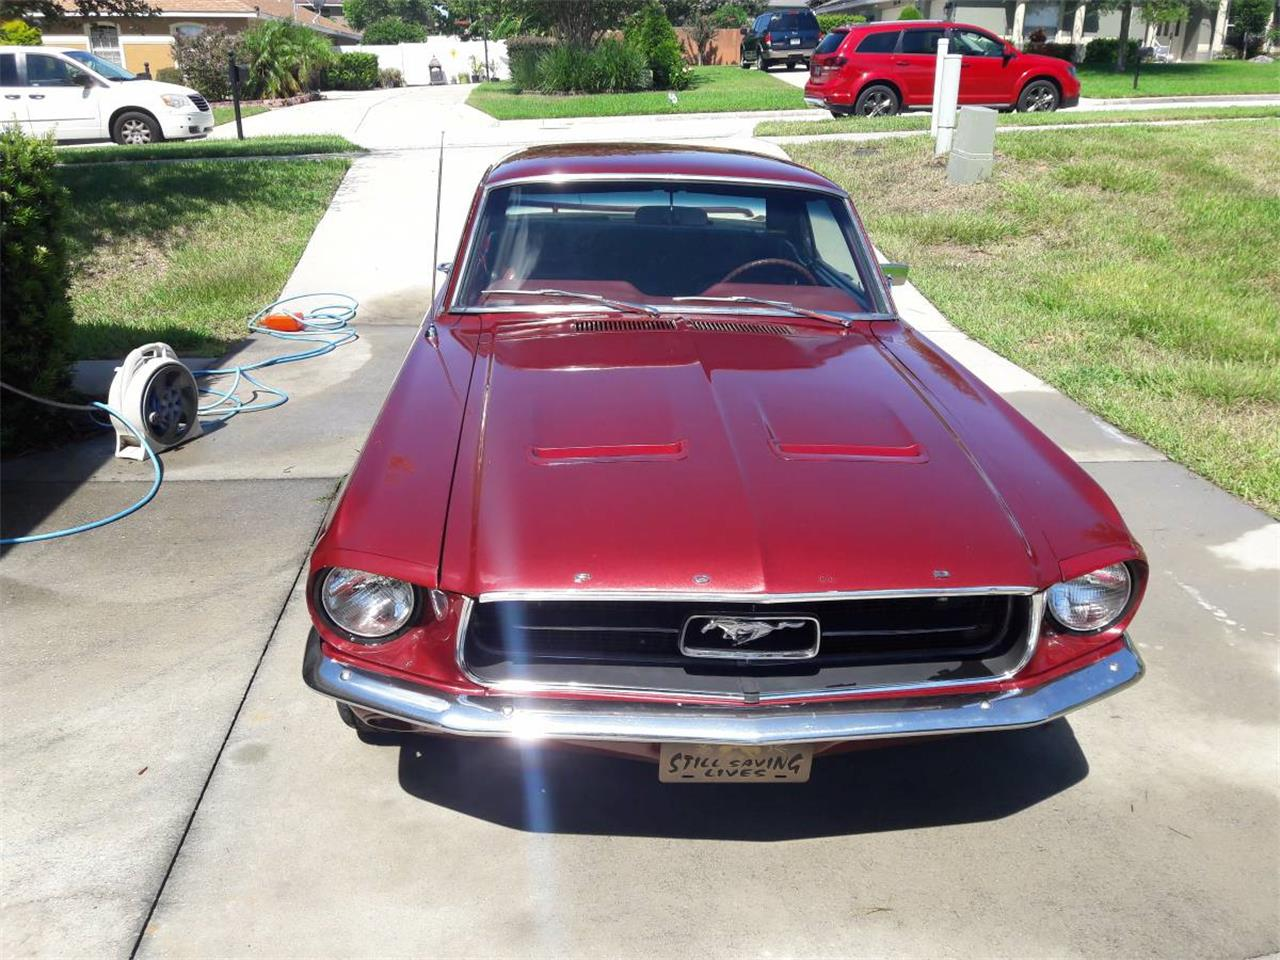 Large Picture of '67 Mustang located in Florida - $11,500.00 - M8AB